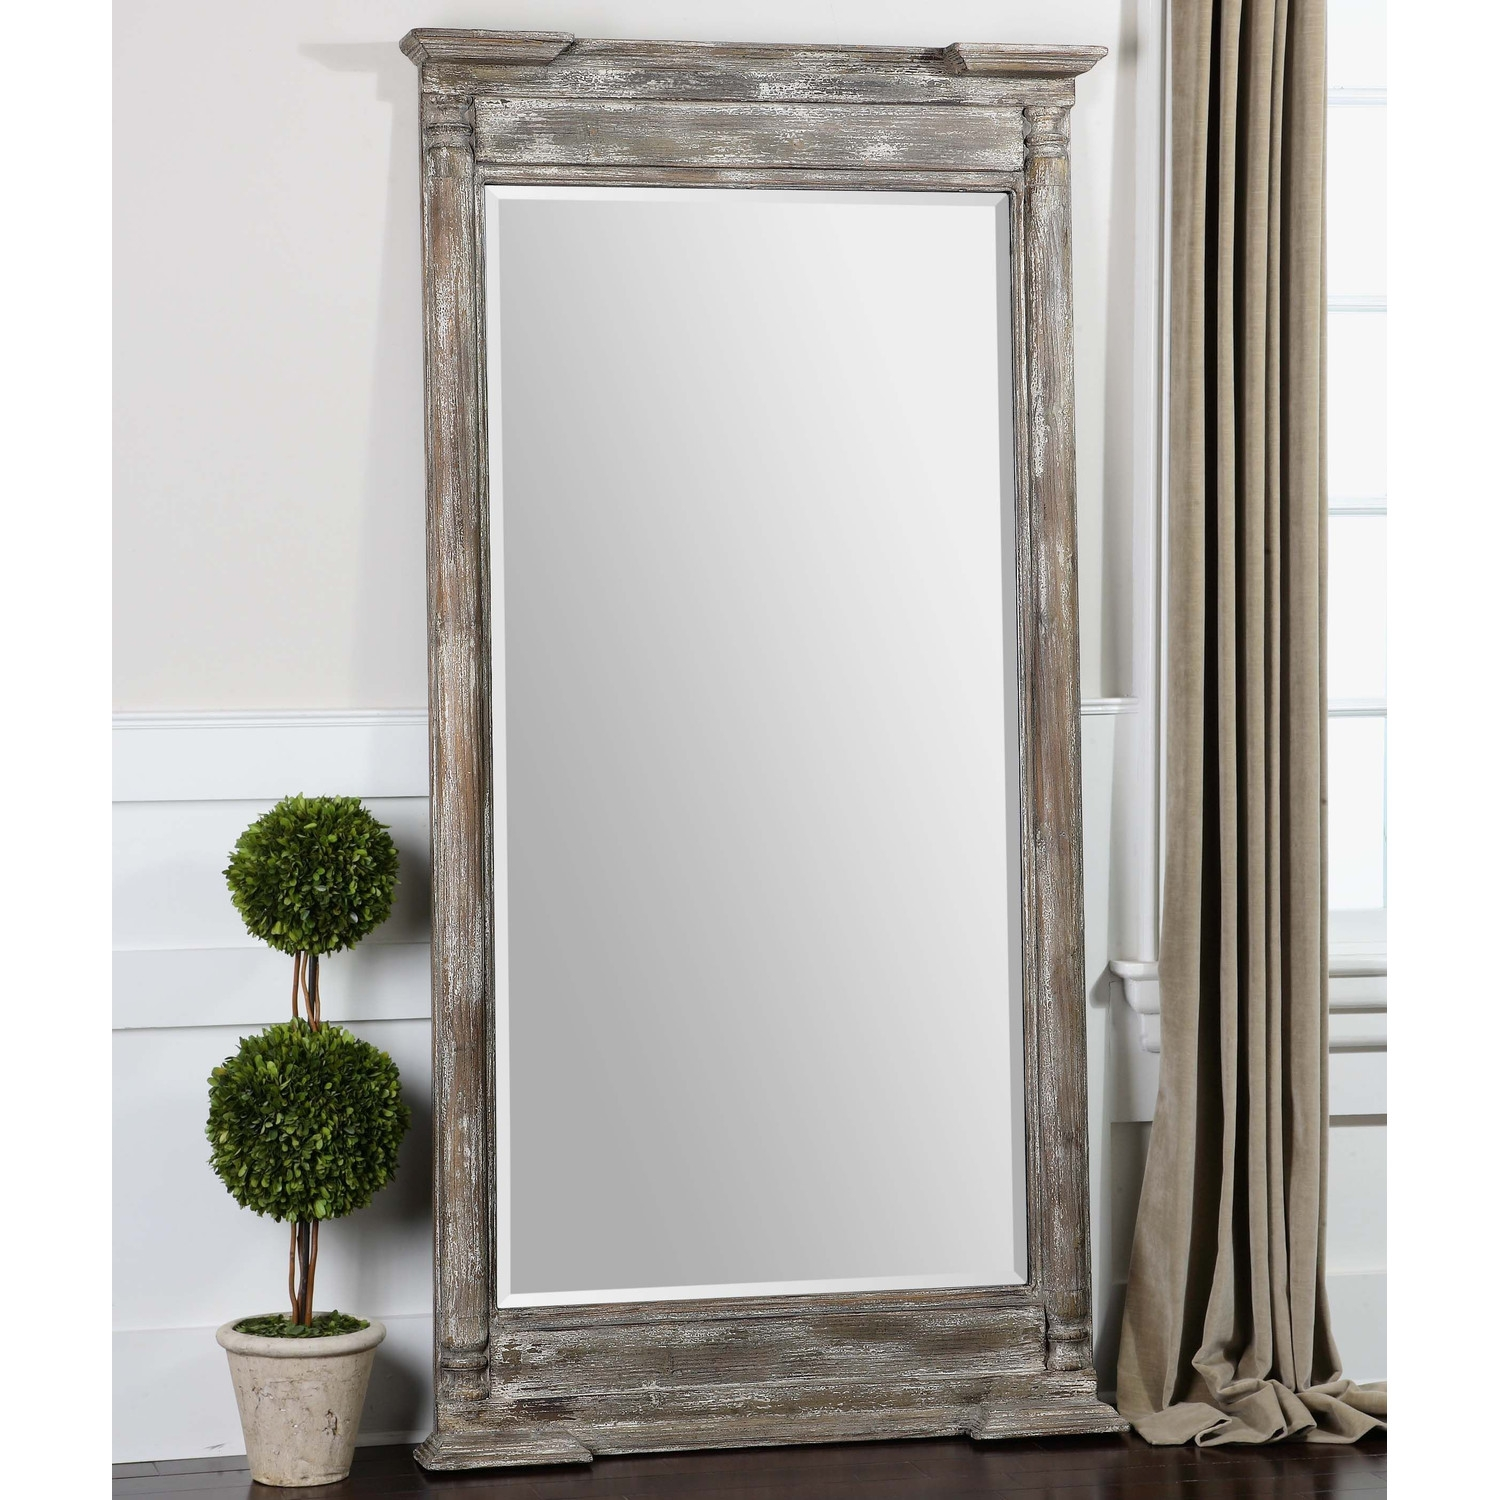 Flooring Incredible Full Length Floor Mirror Pictures With Full Length Antique Mirror (Image 11 of 15)